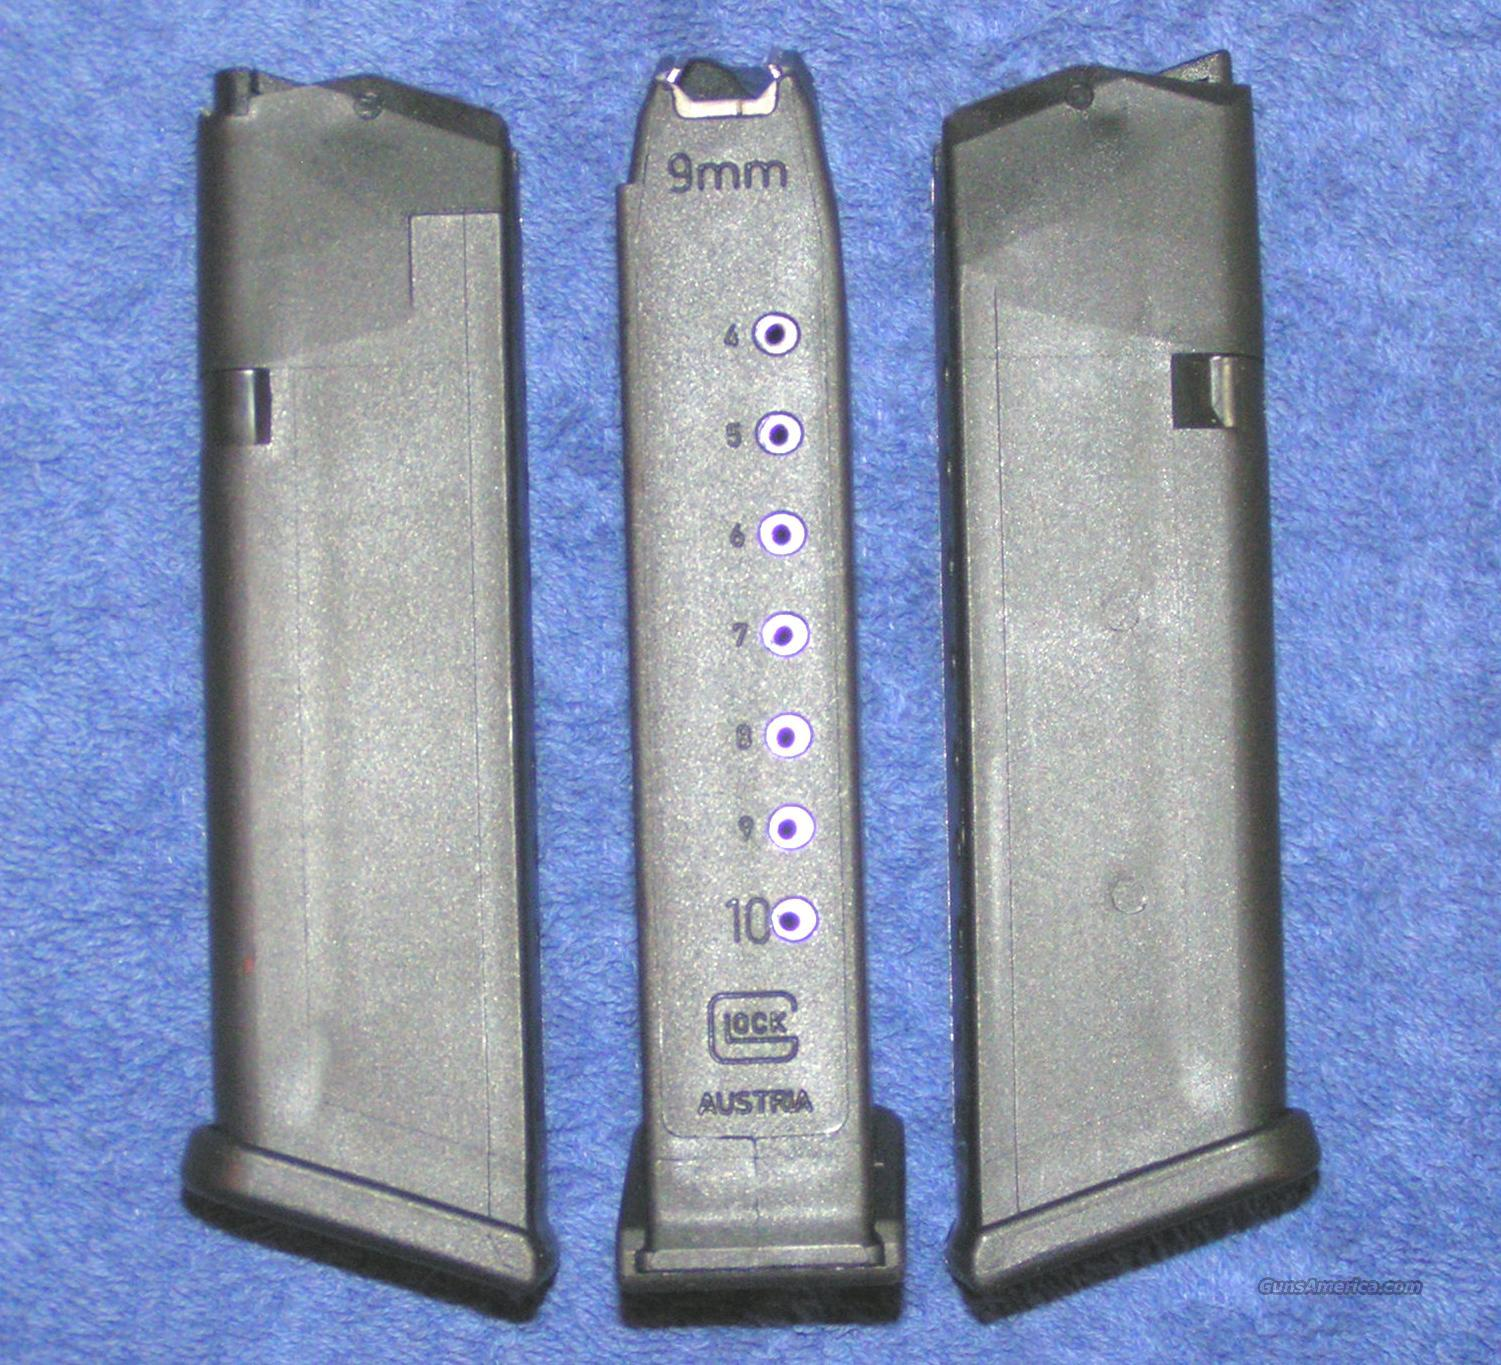 3 Glock 17 mags 10 rd 9mm 4th Gen. factory Glock $21 each  Non-Guns > Magazines & Clips > Pistol Magazines > Glock